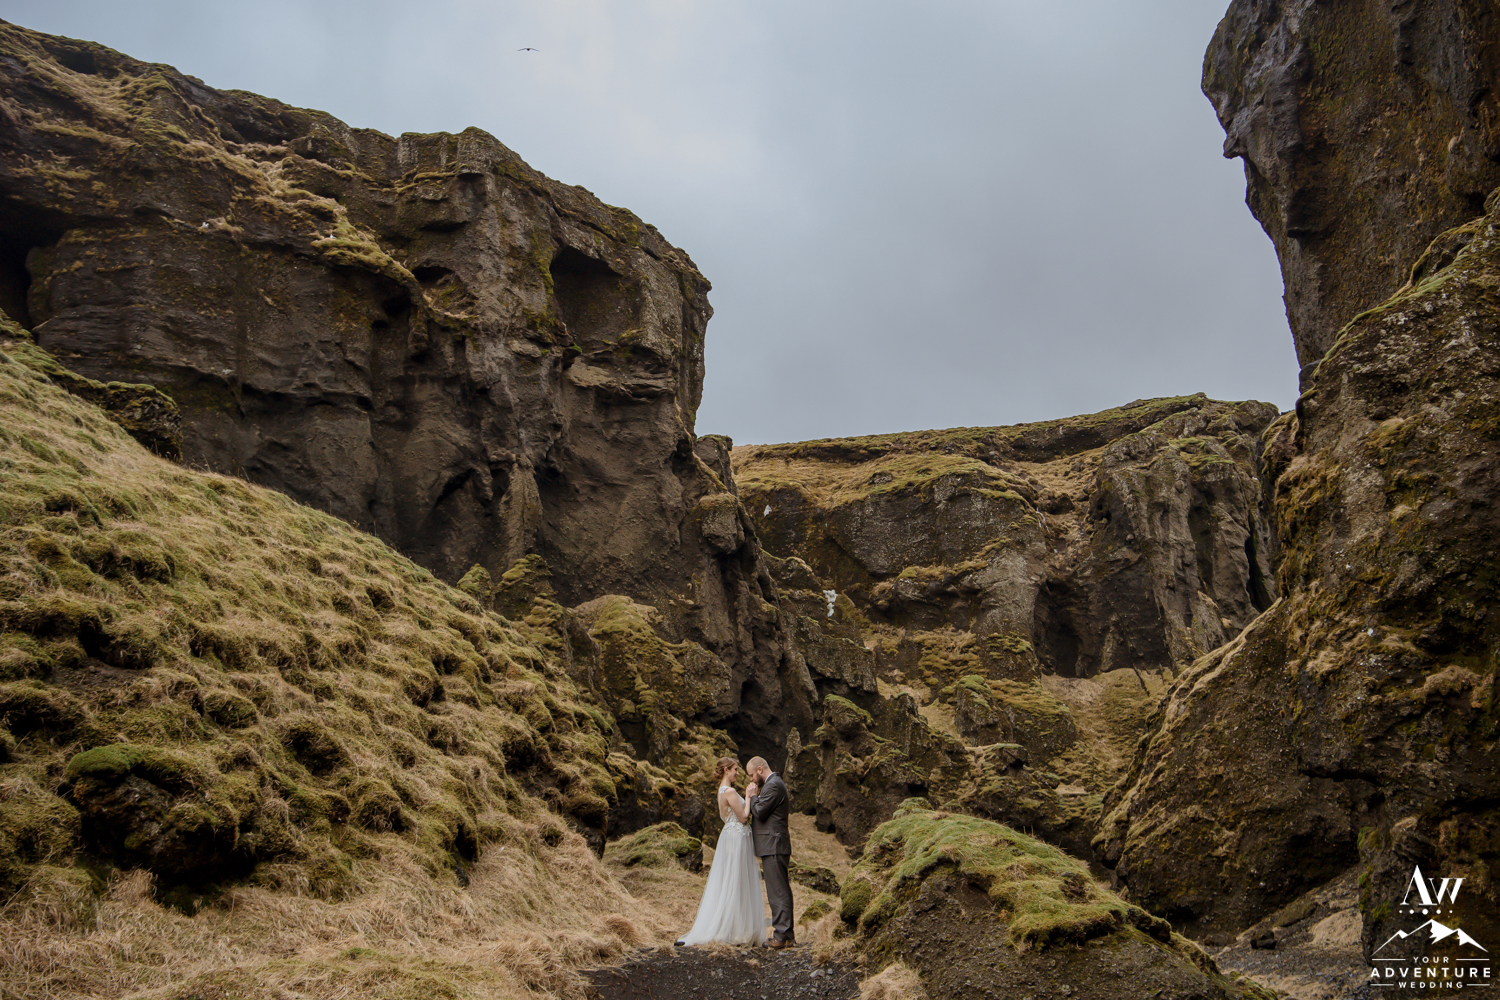 Hiking Elopement Adventure Couple being romantic in a Canyon